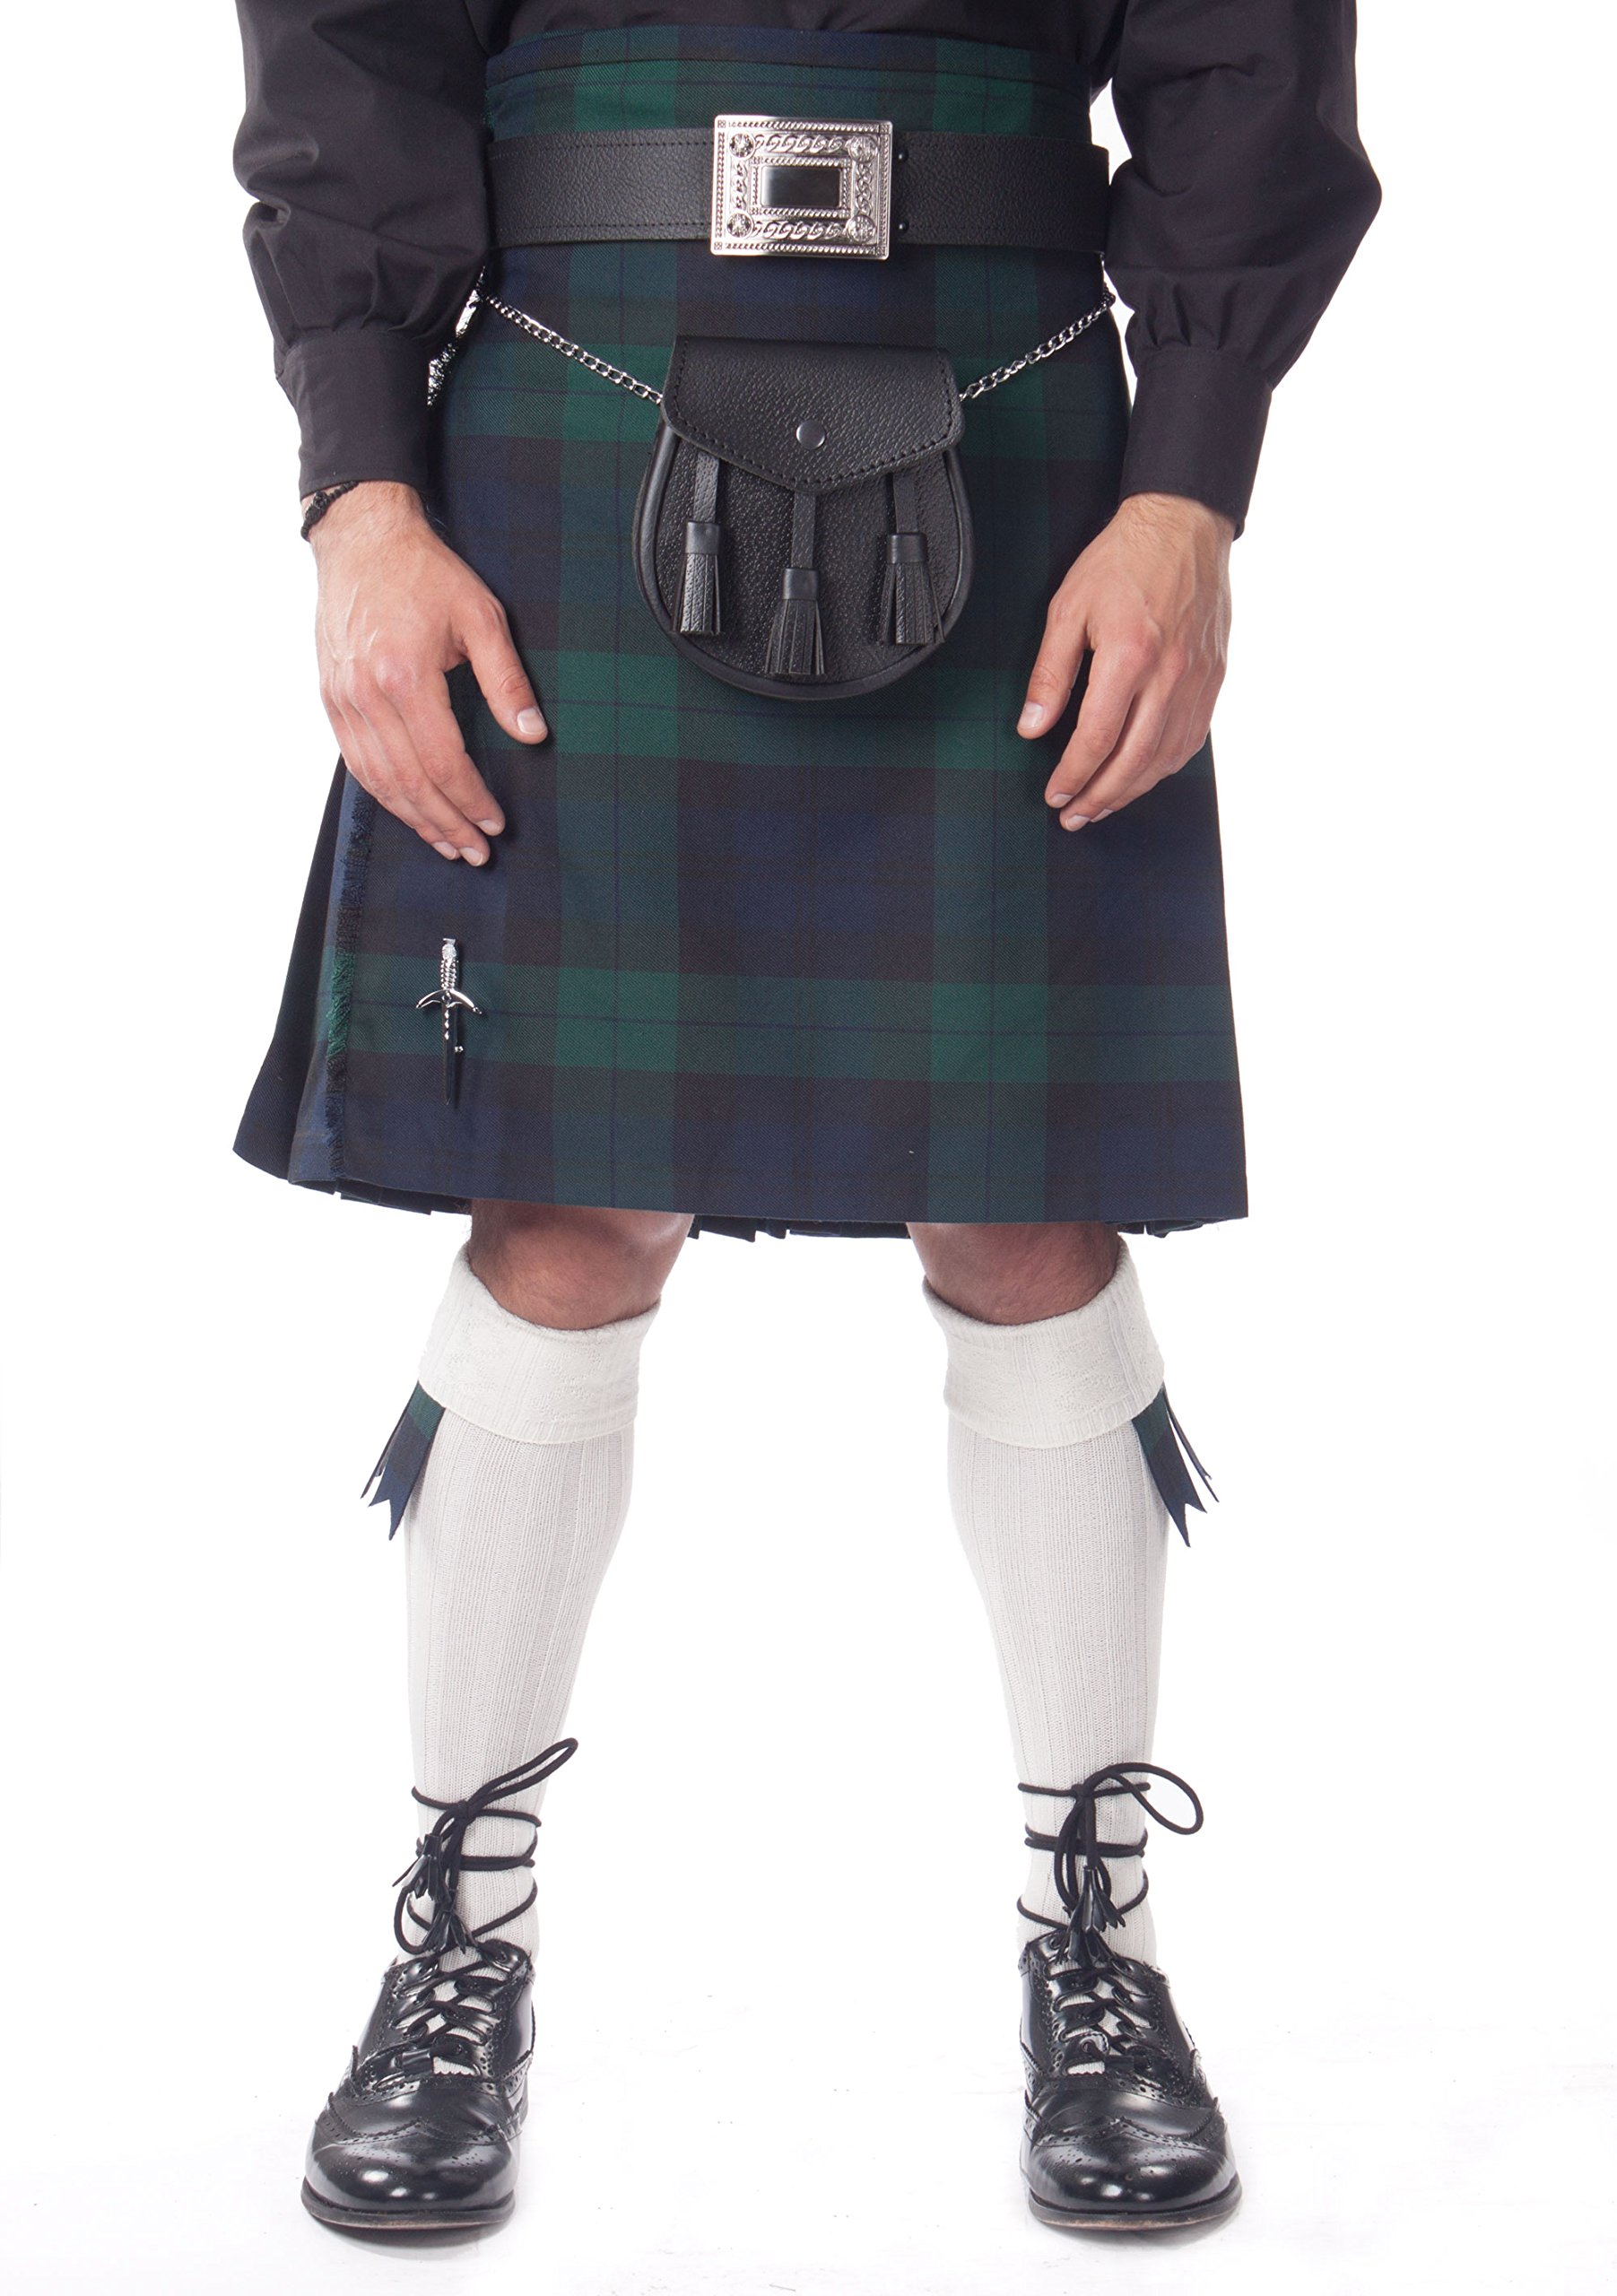 Kilt Society Mens 7 Piece Casual Kilt Outfit- Black Watch Tartan with White Hose 38'' to 42''